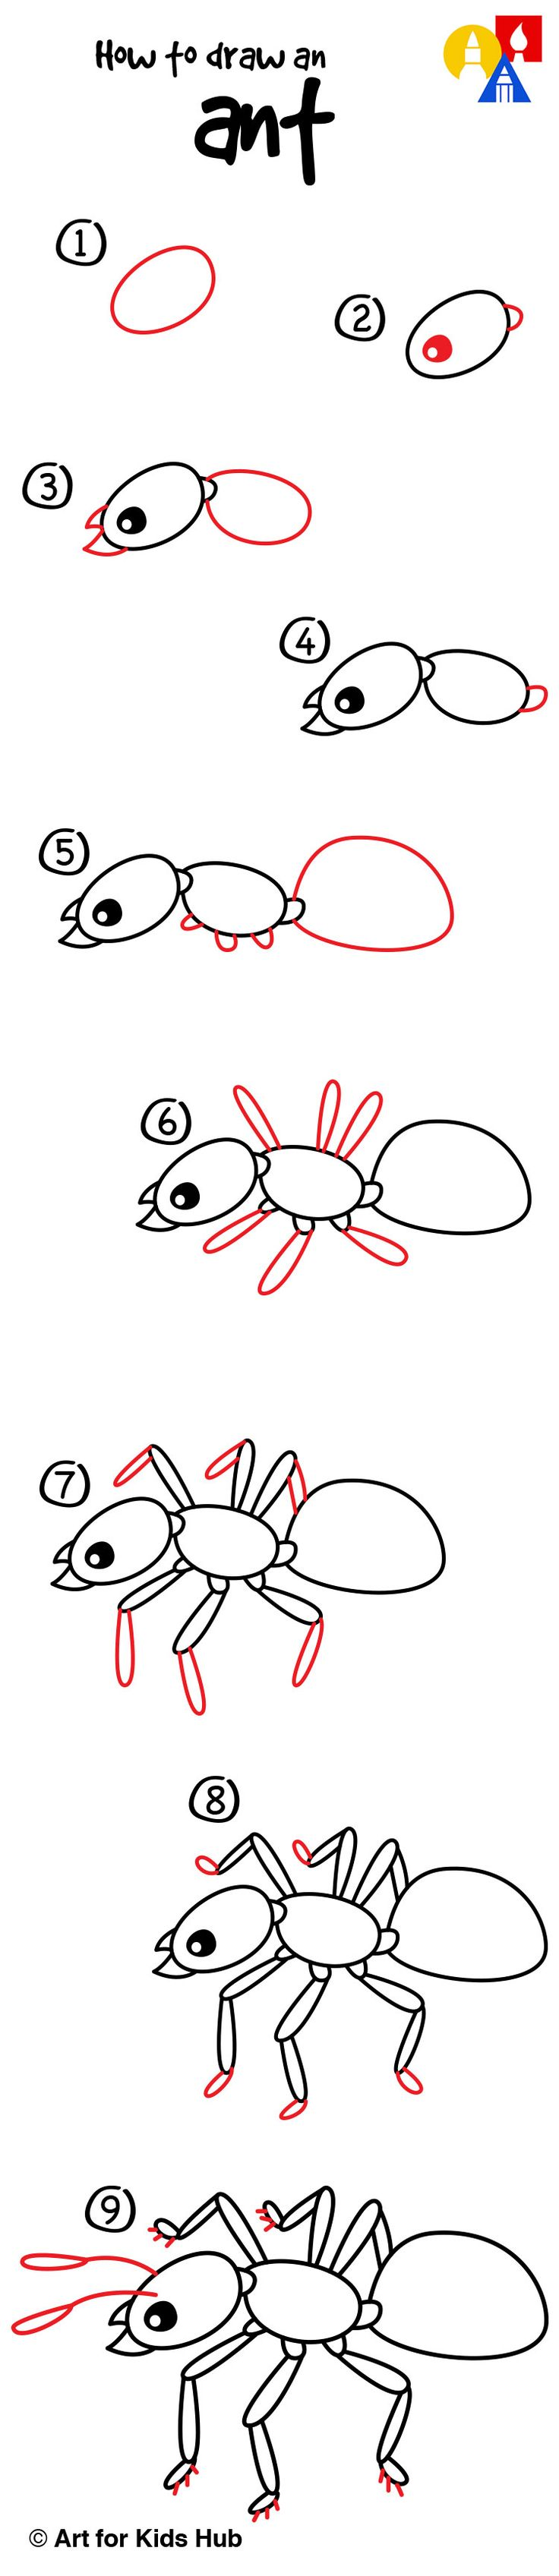 How To Draw An Ant - Art For Kids Hub -